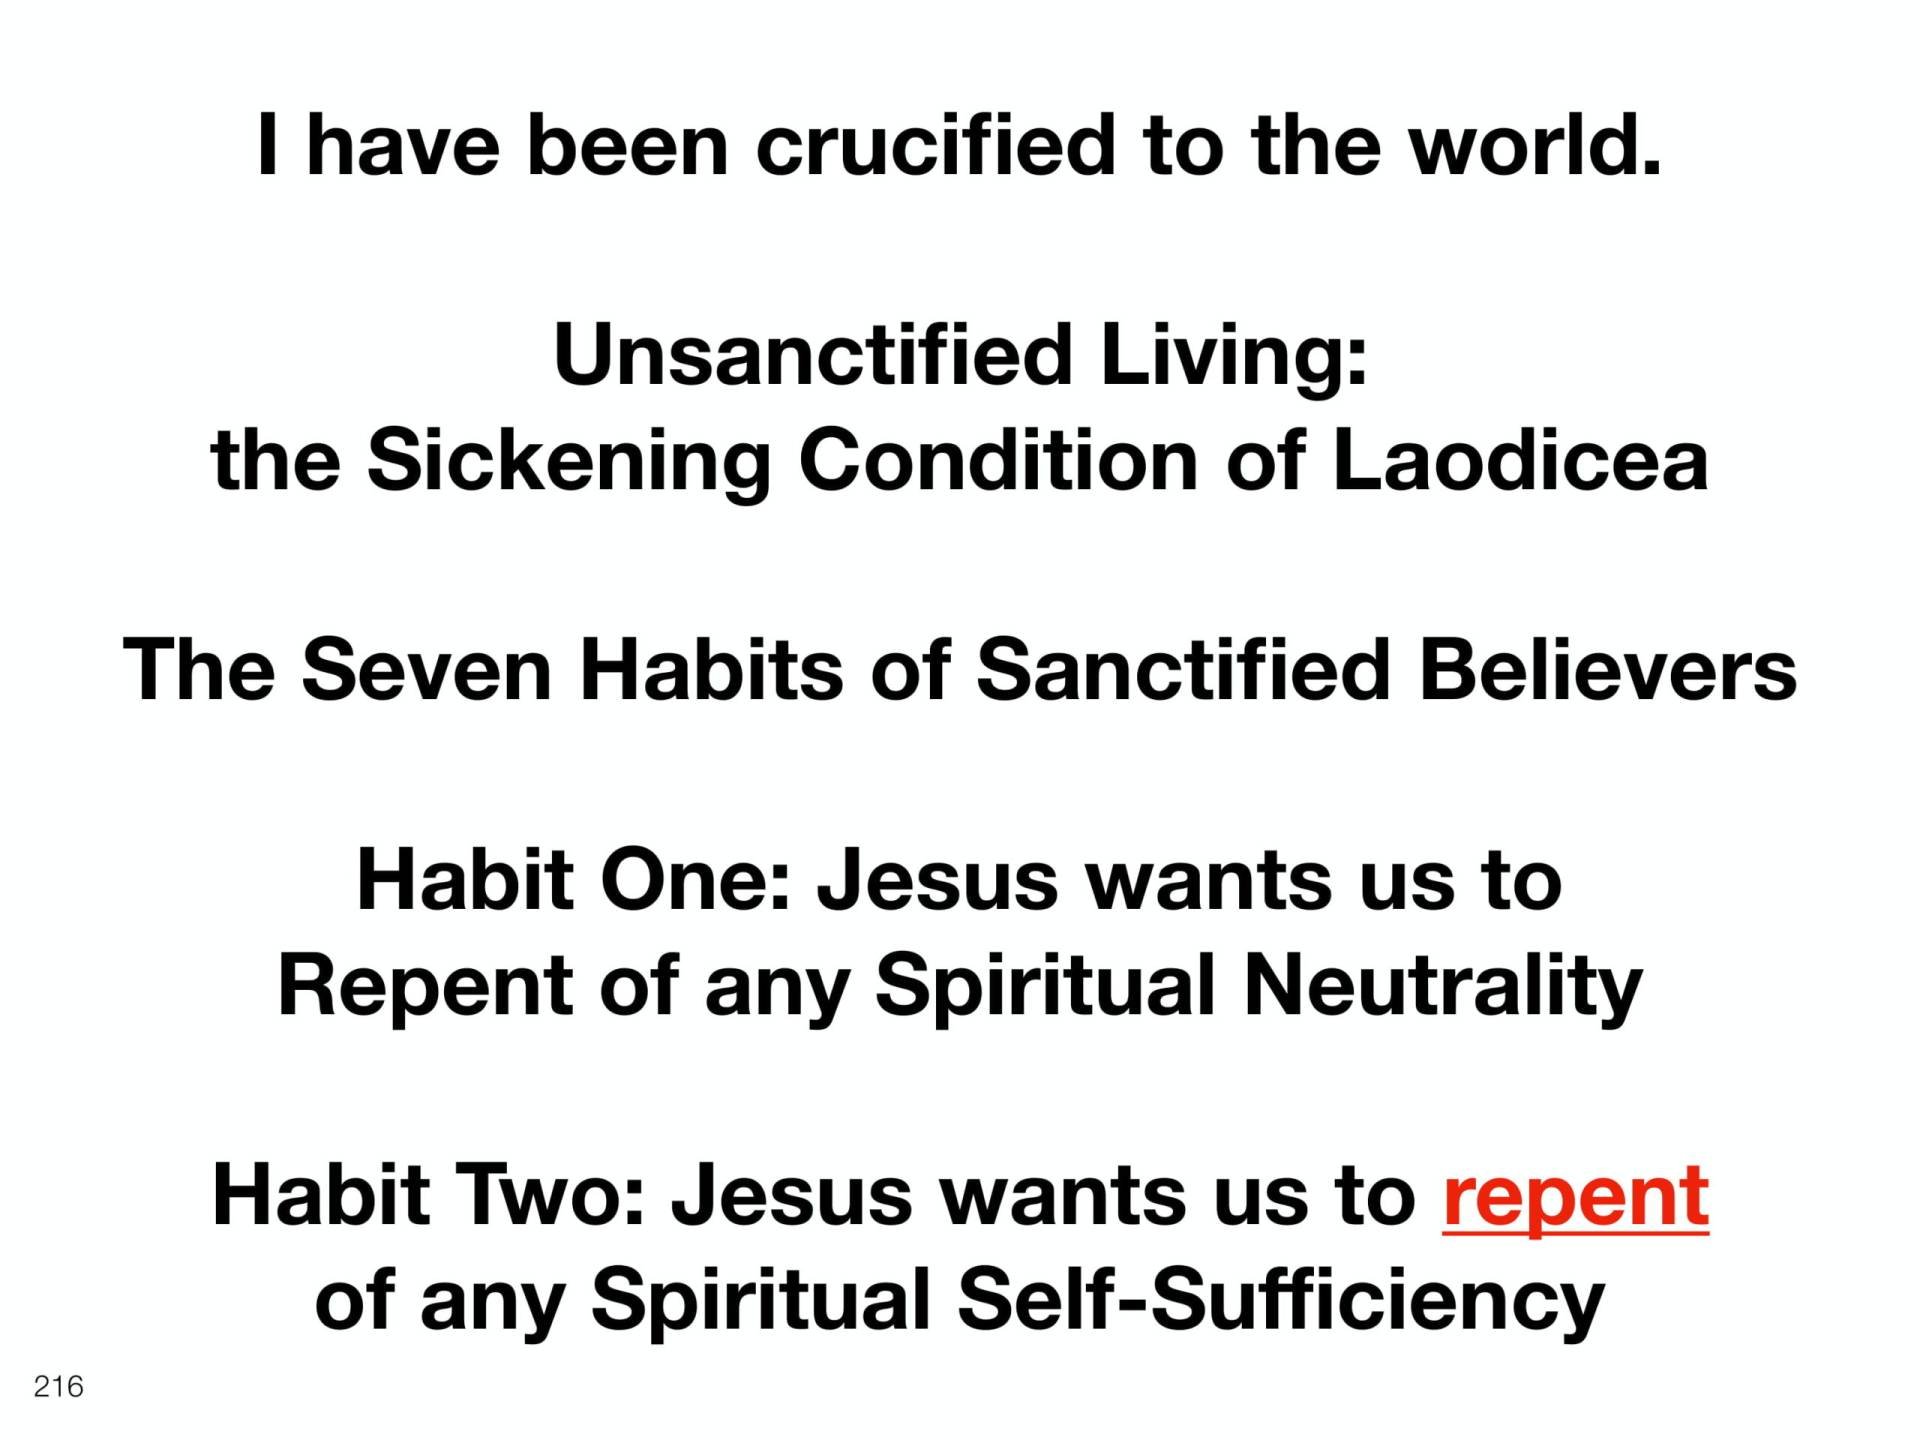 WOL2018 Hungary - 10 - Christ's Last Words To His Church - The Seven Habits of Sanctified Believers (6)